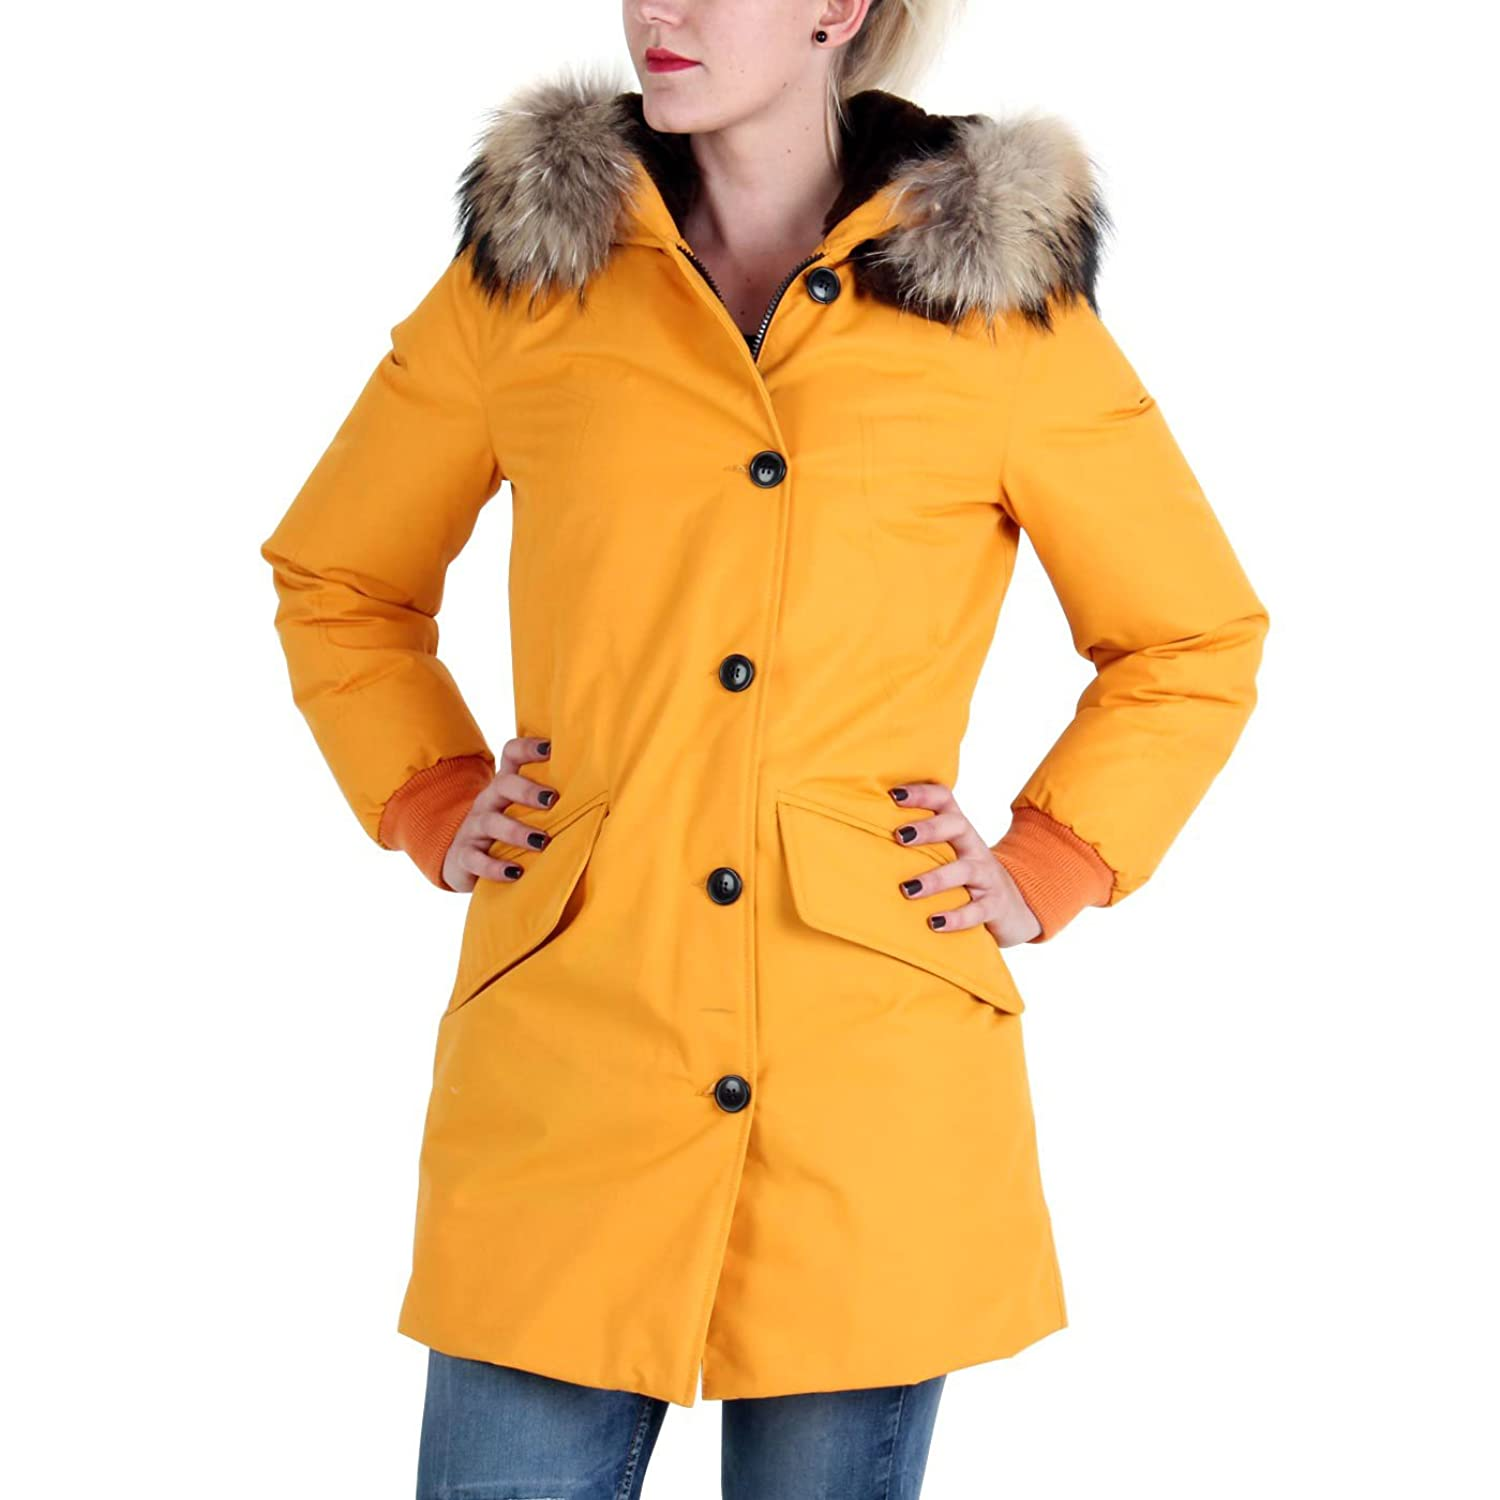 MUSEUM Damen Winter Daunenparka Yellow MD19481 2. Wahl